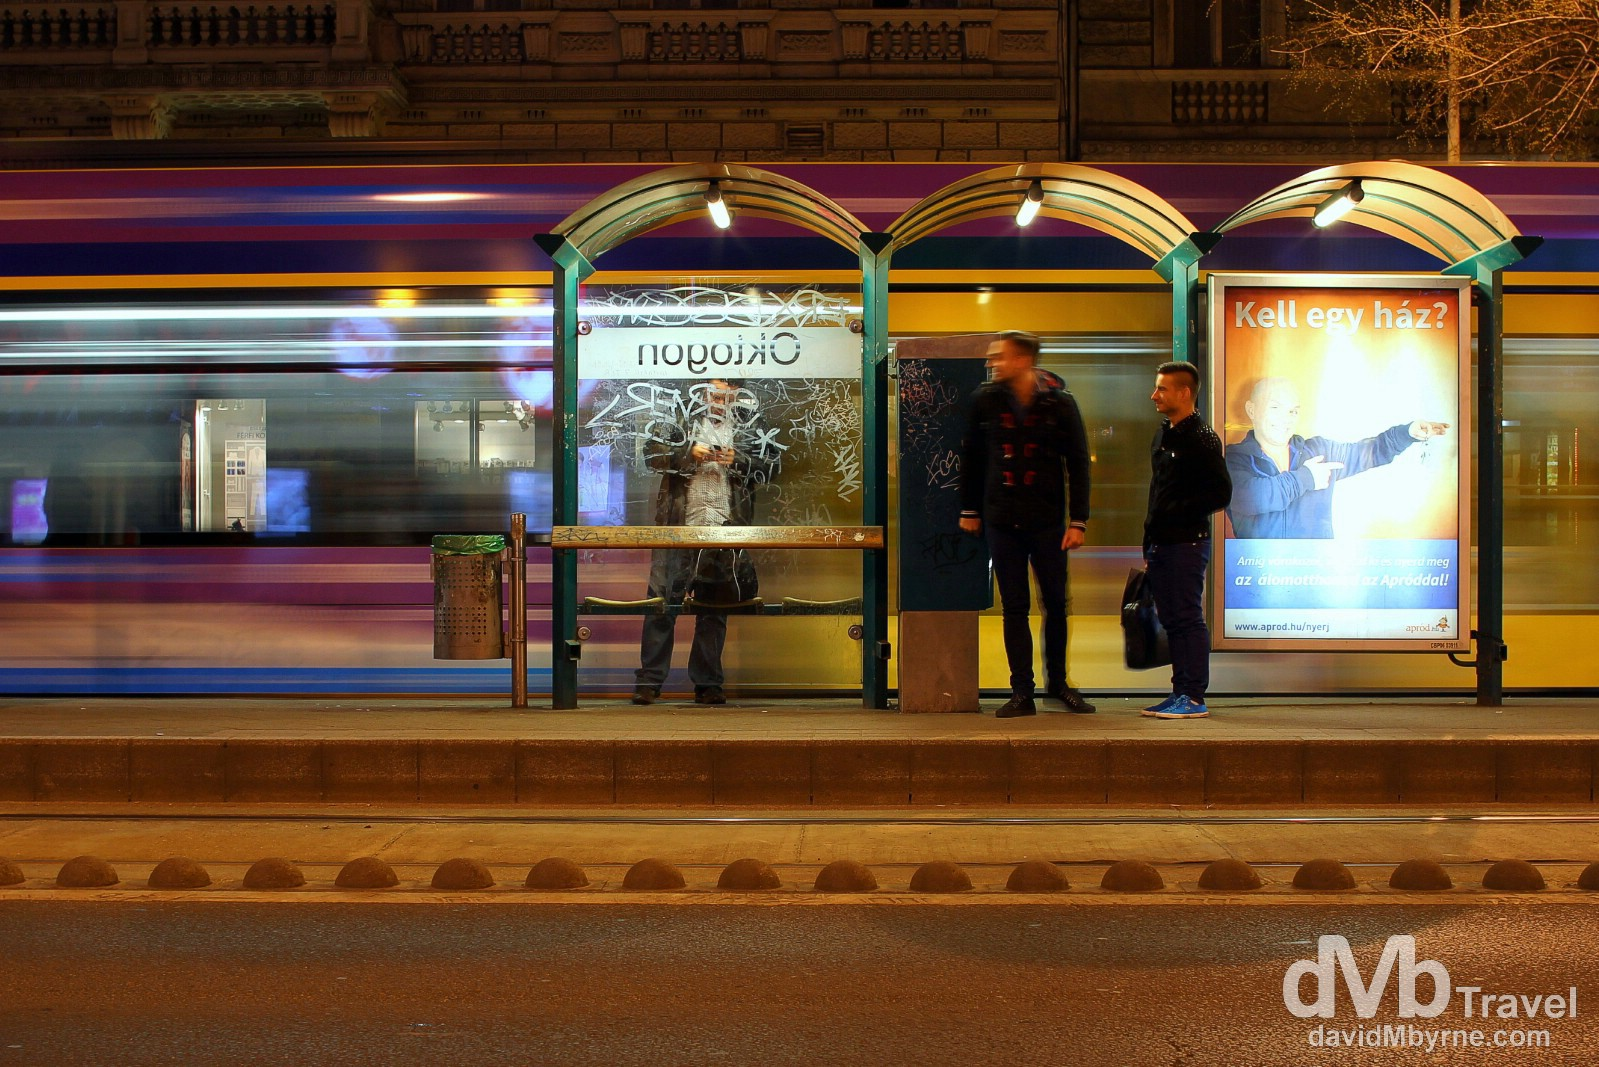 Waiting for the tram on Terez Boulevard in Budapest, Hungary. March 25th, 2014.